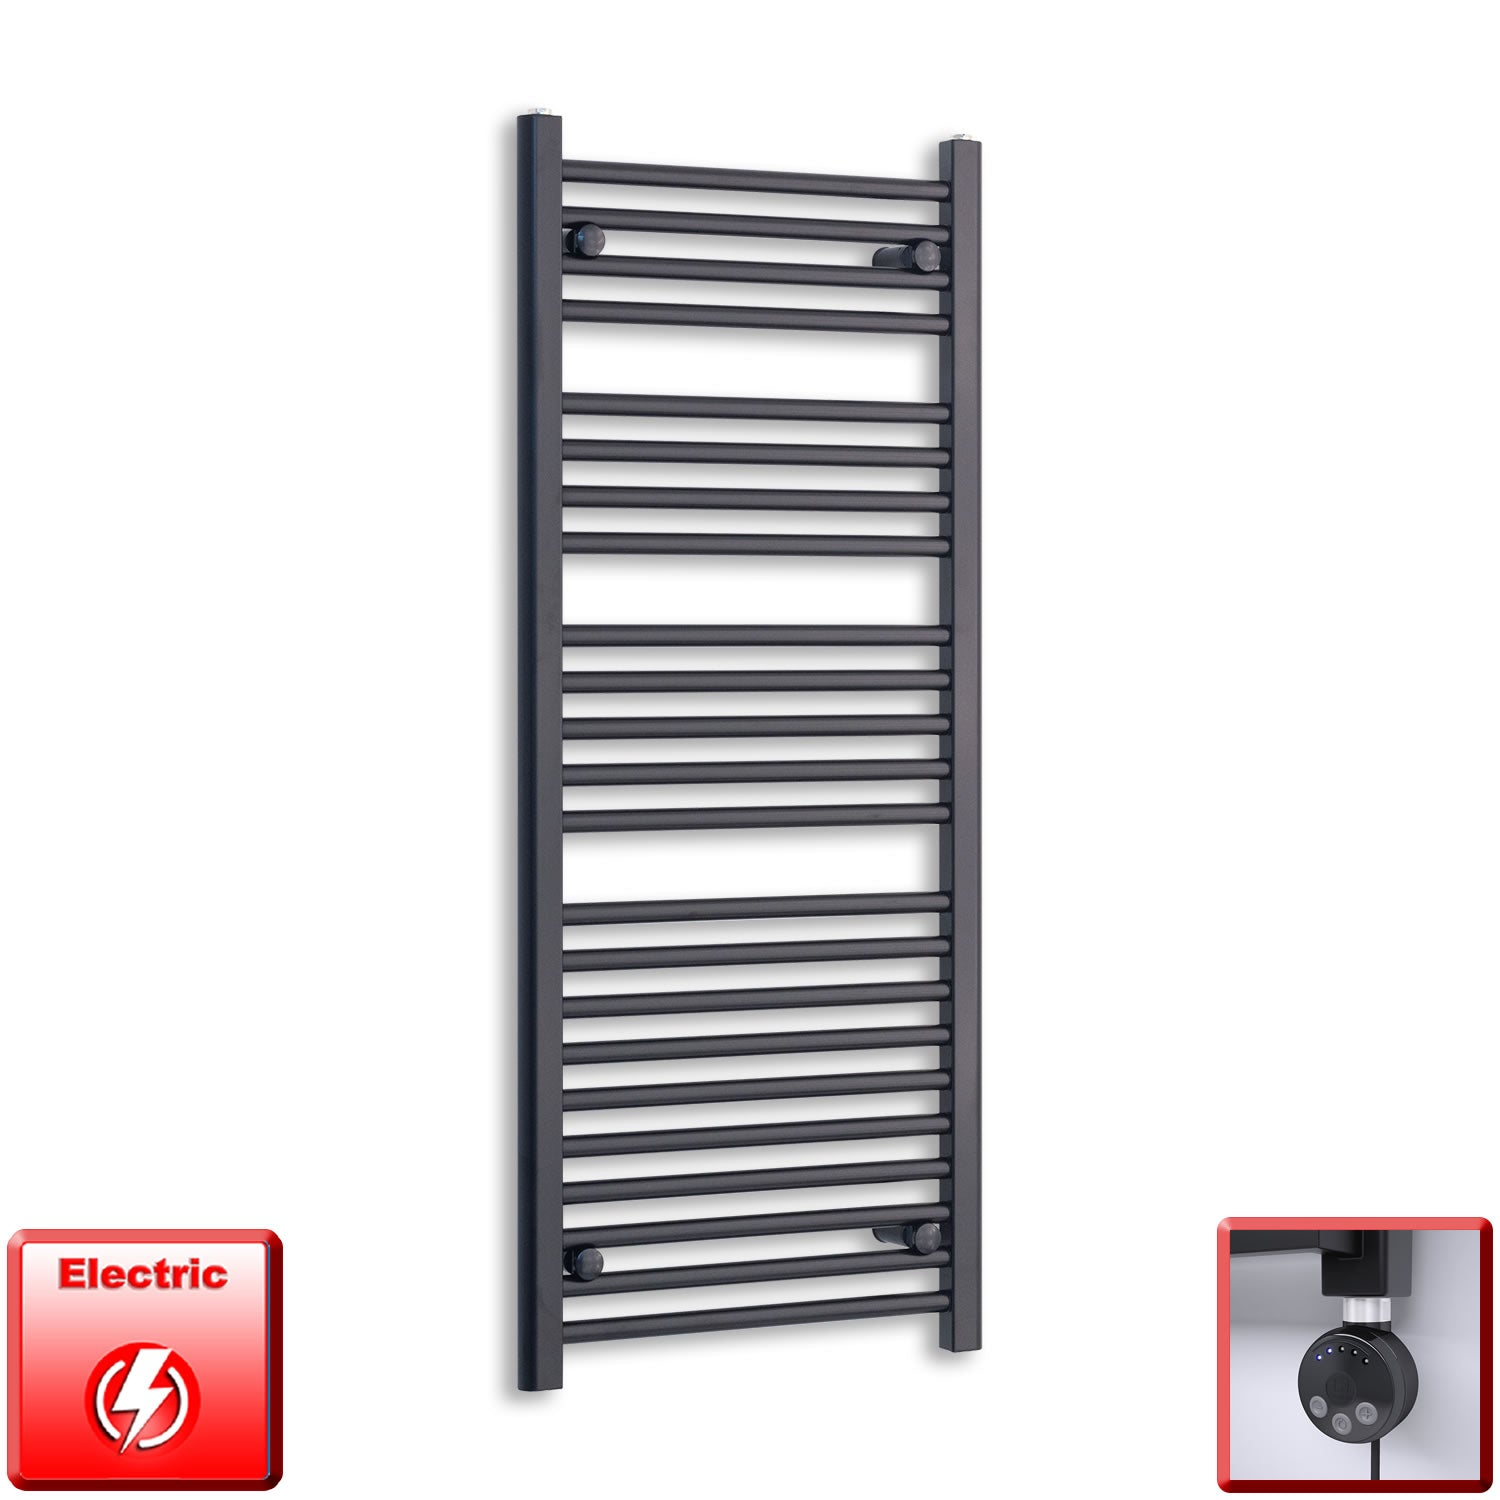 600mm Wide 1200mm High Pre-Filled Black Electric Towel Rail Radiator With Thermostatic MEG Element